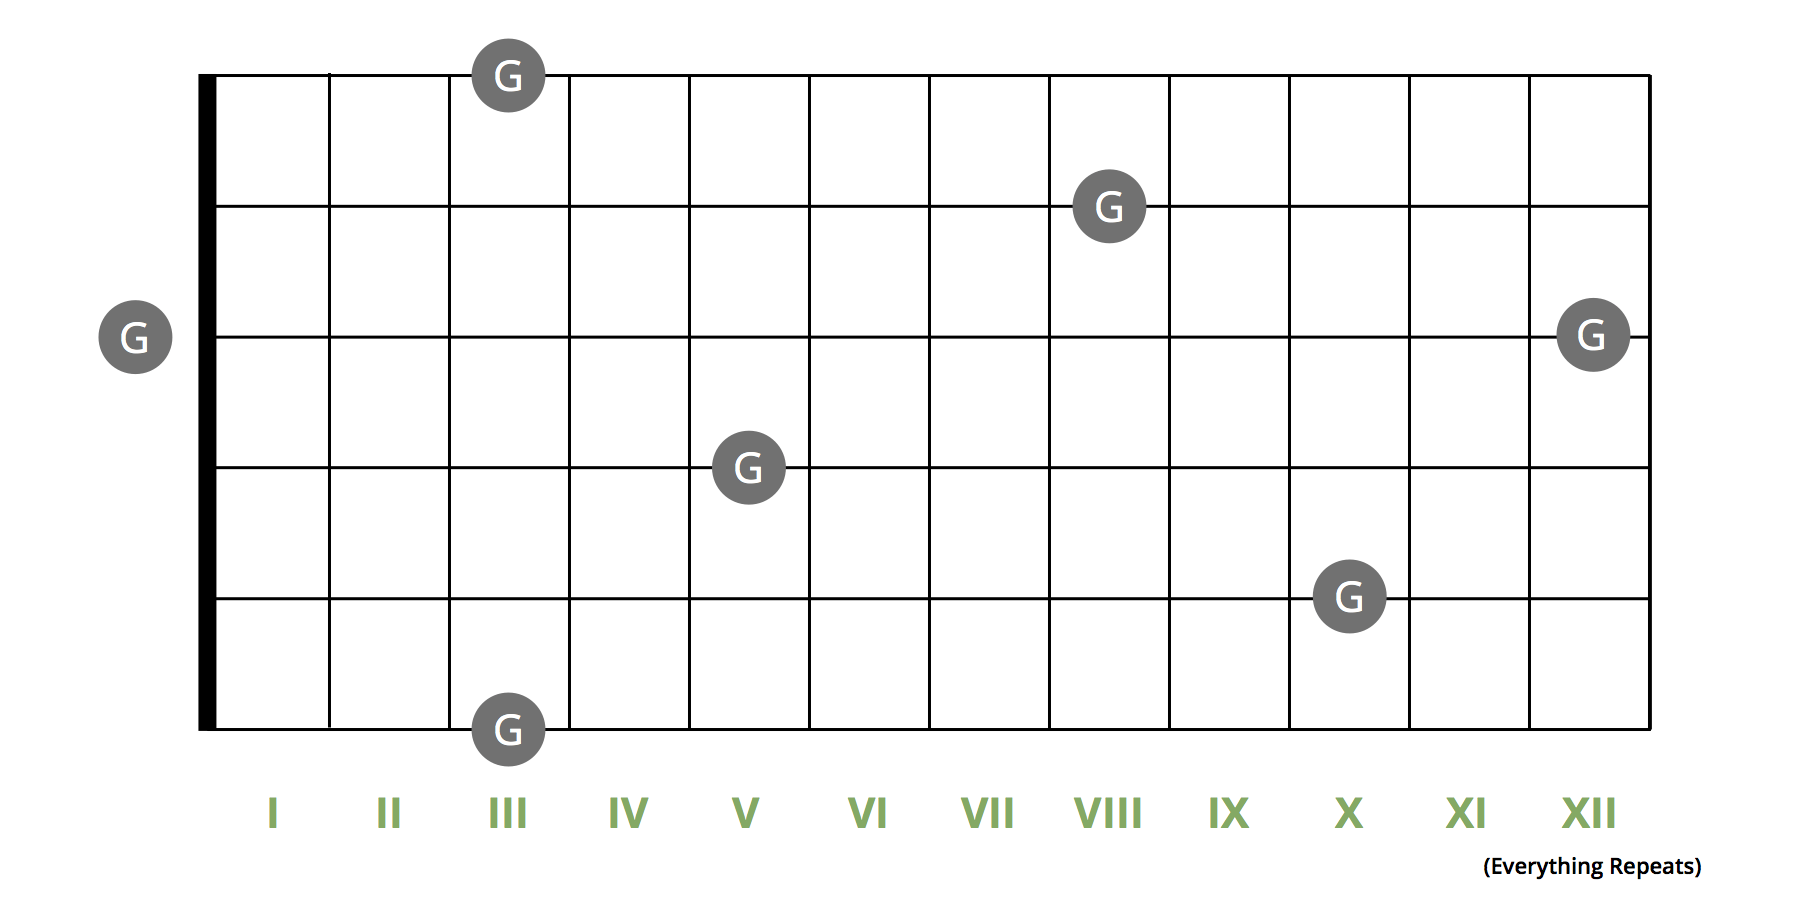 Easiest guide to learning the notes on your guitar fretboard youve completed 13 days of learning the guitar fretboard training you should now feel much more comfortable with the notes on the guitar fretboard hexwebz Image collections